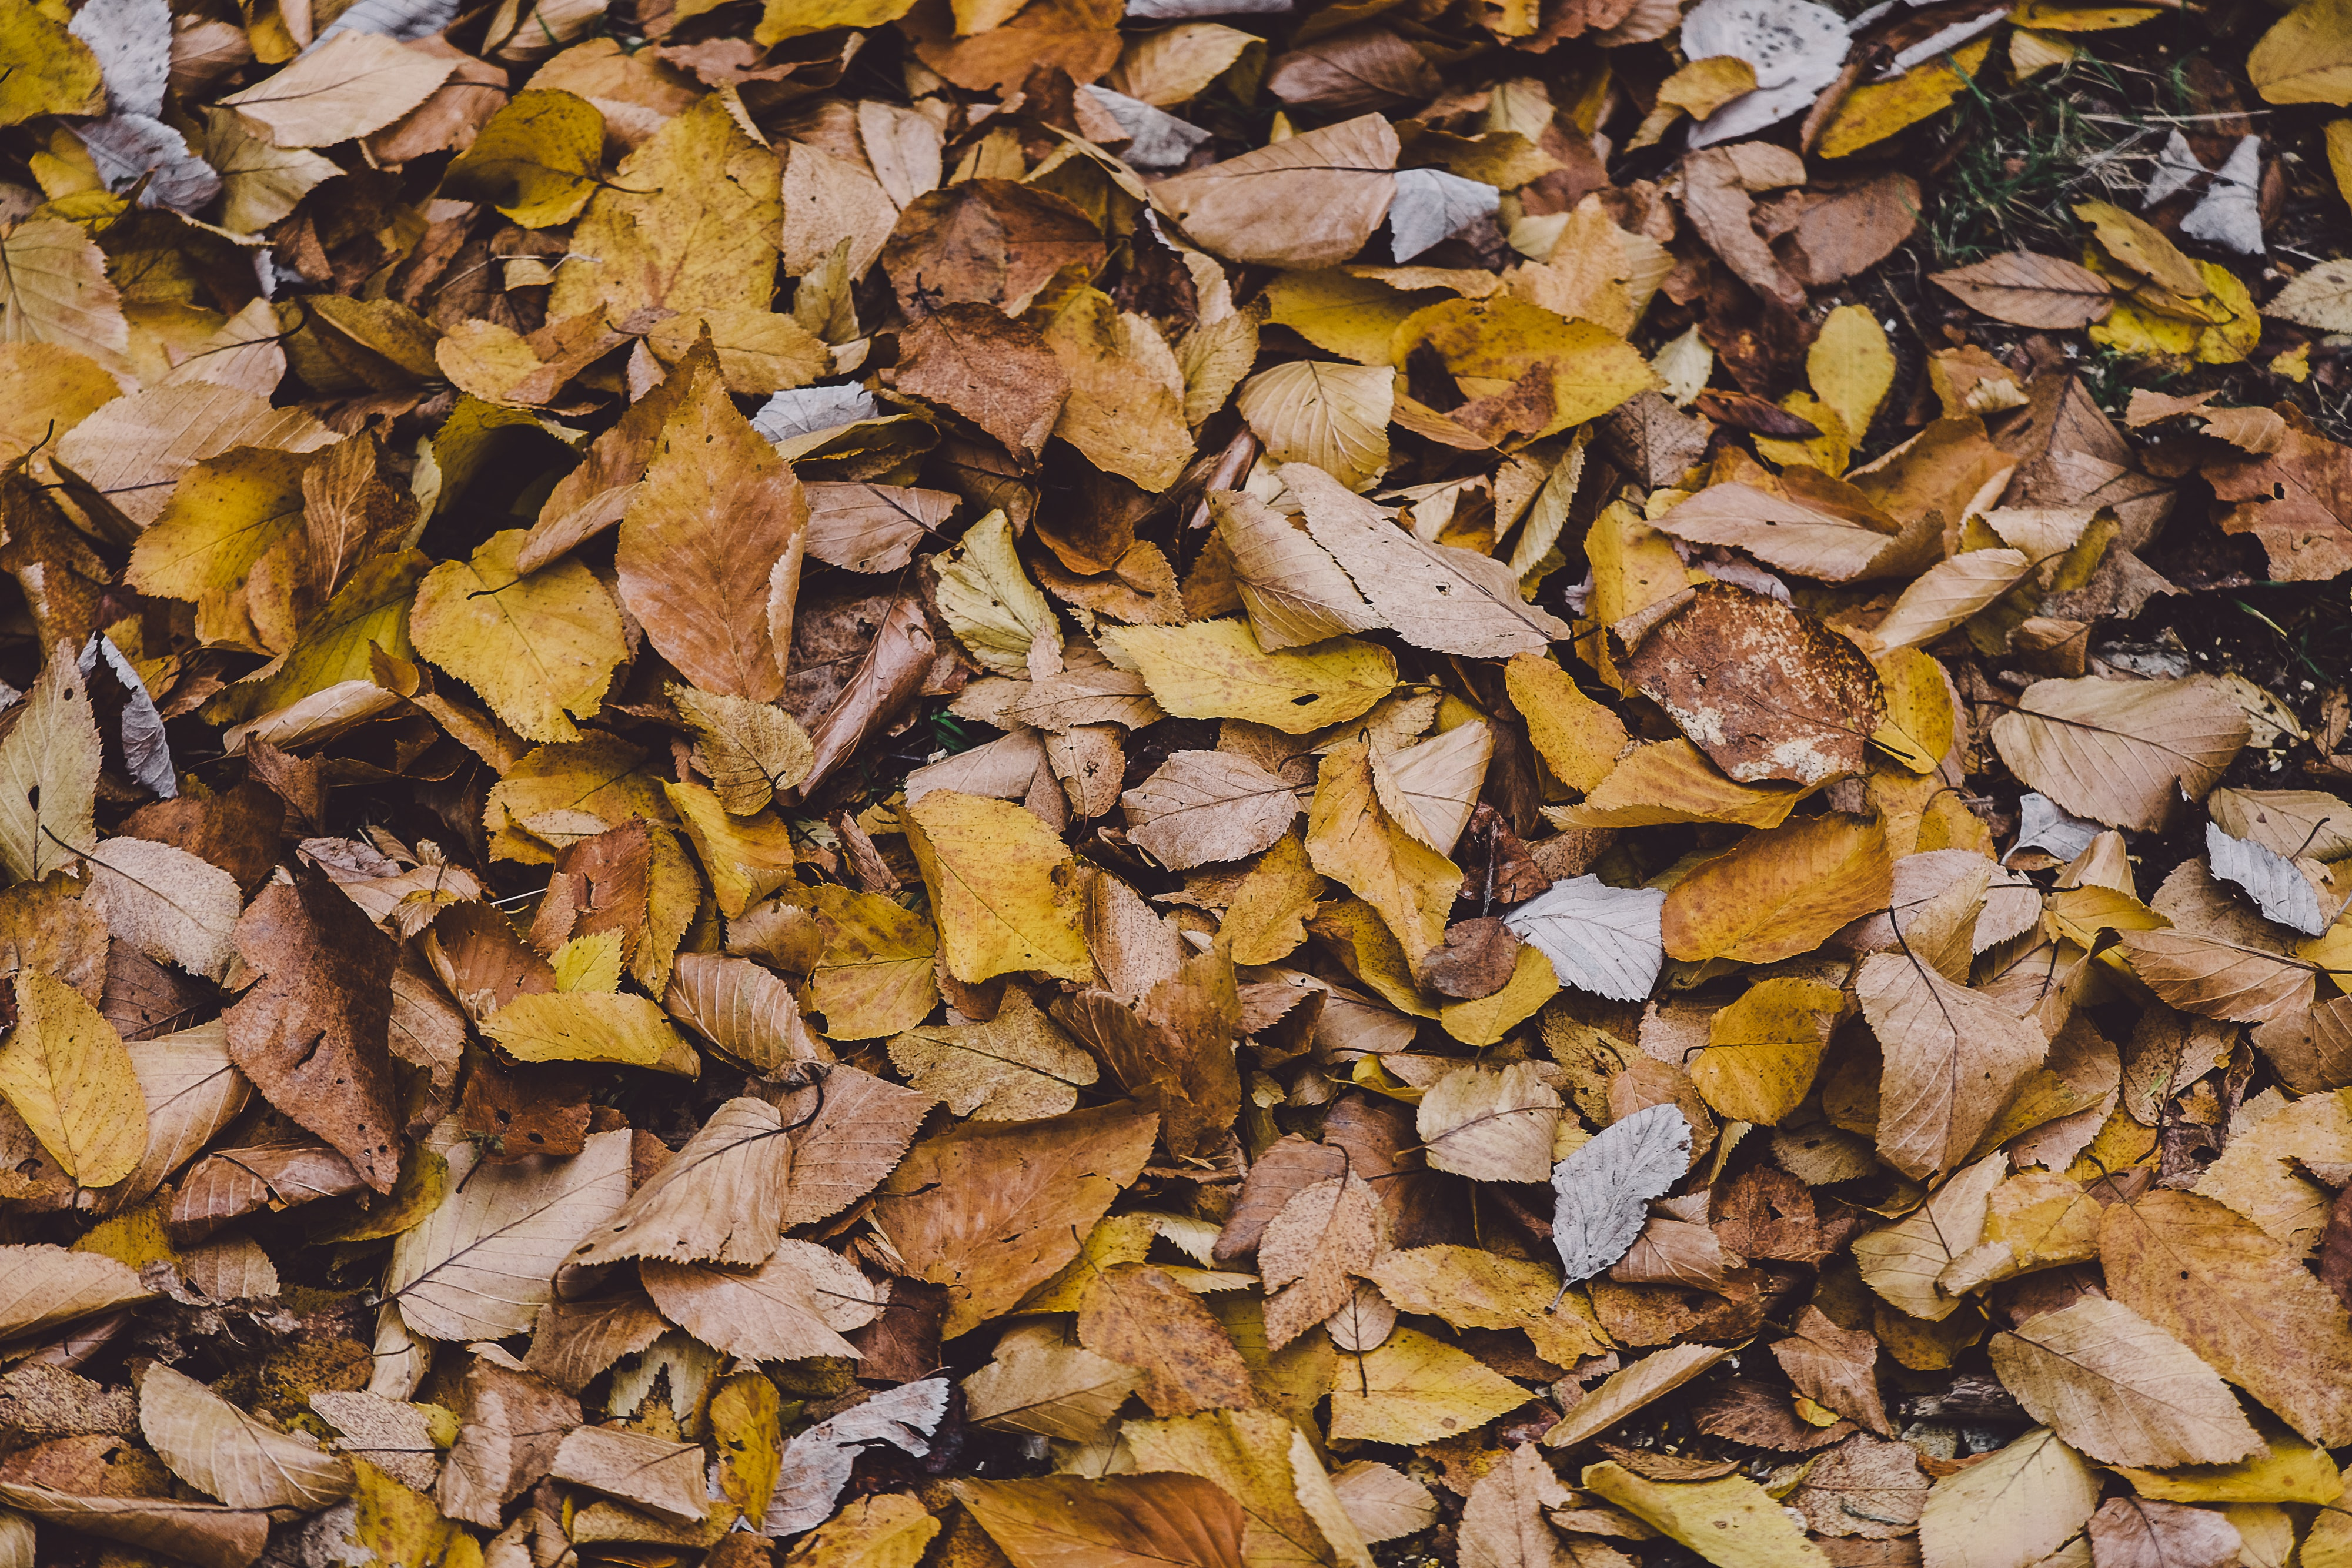 An overhead shot of autumn leaves on the ground